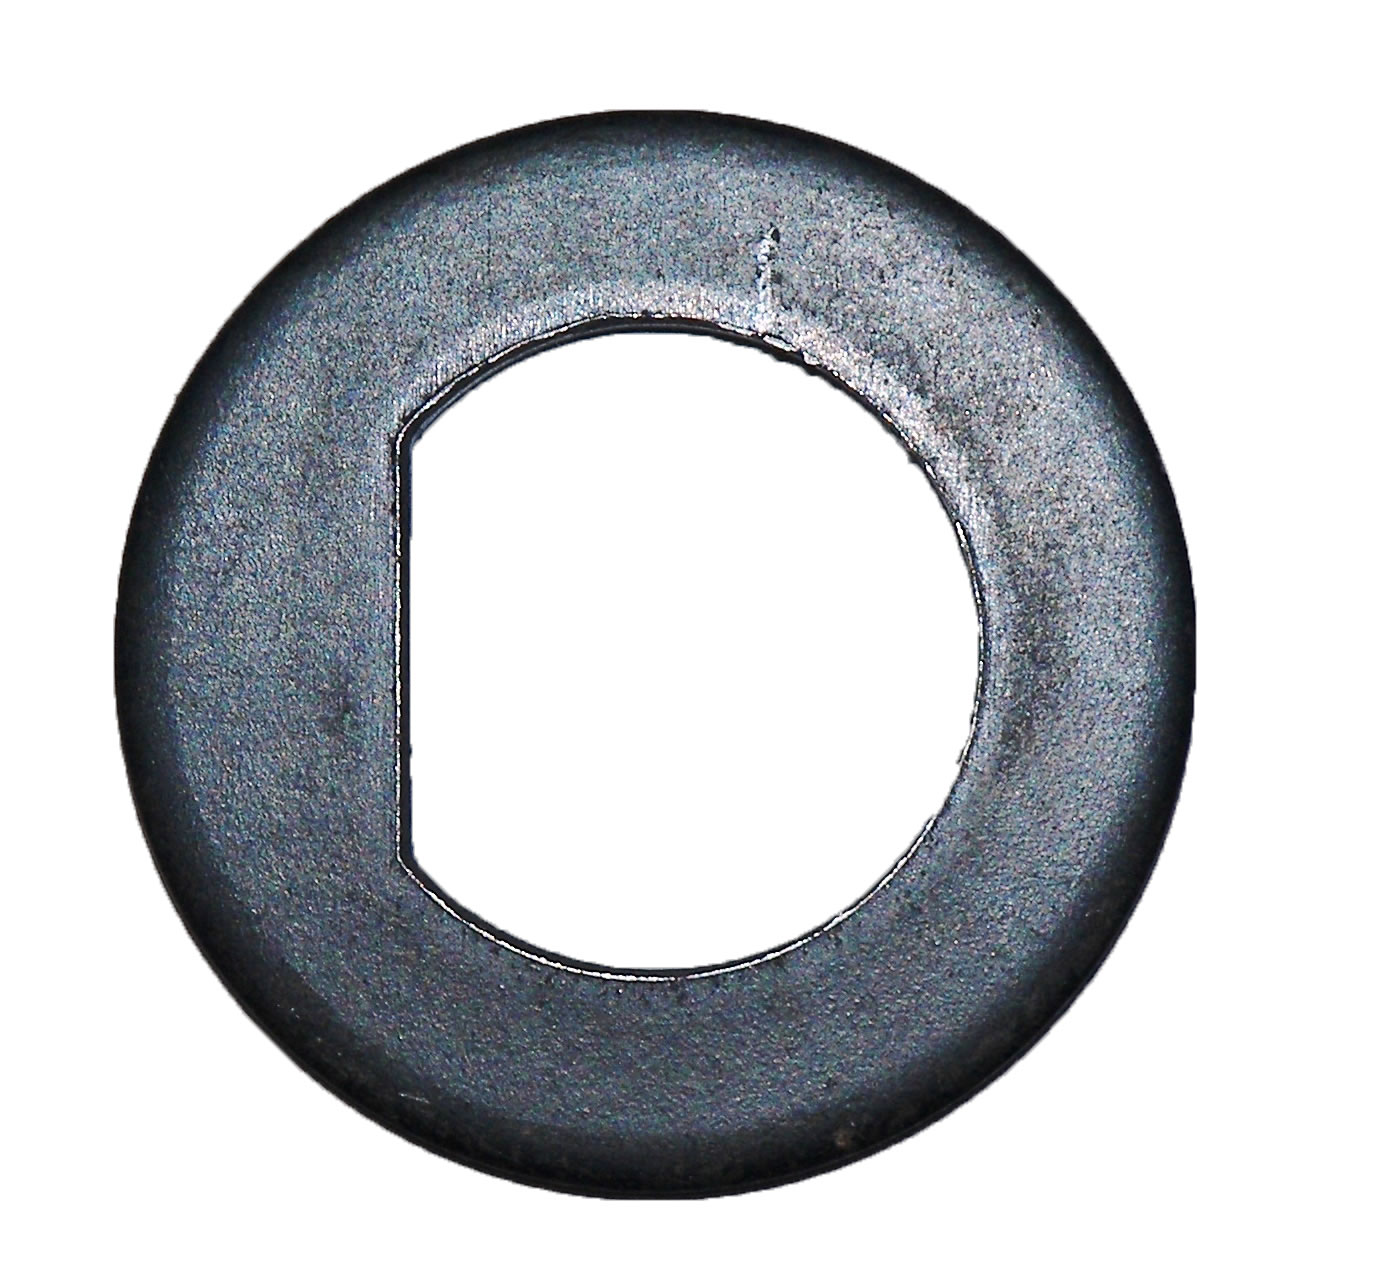 014-119215 AP Products Washer D Flat Hole Shape